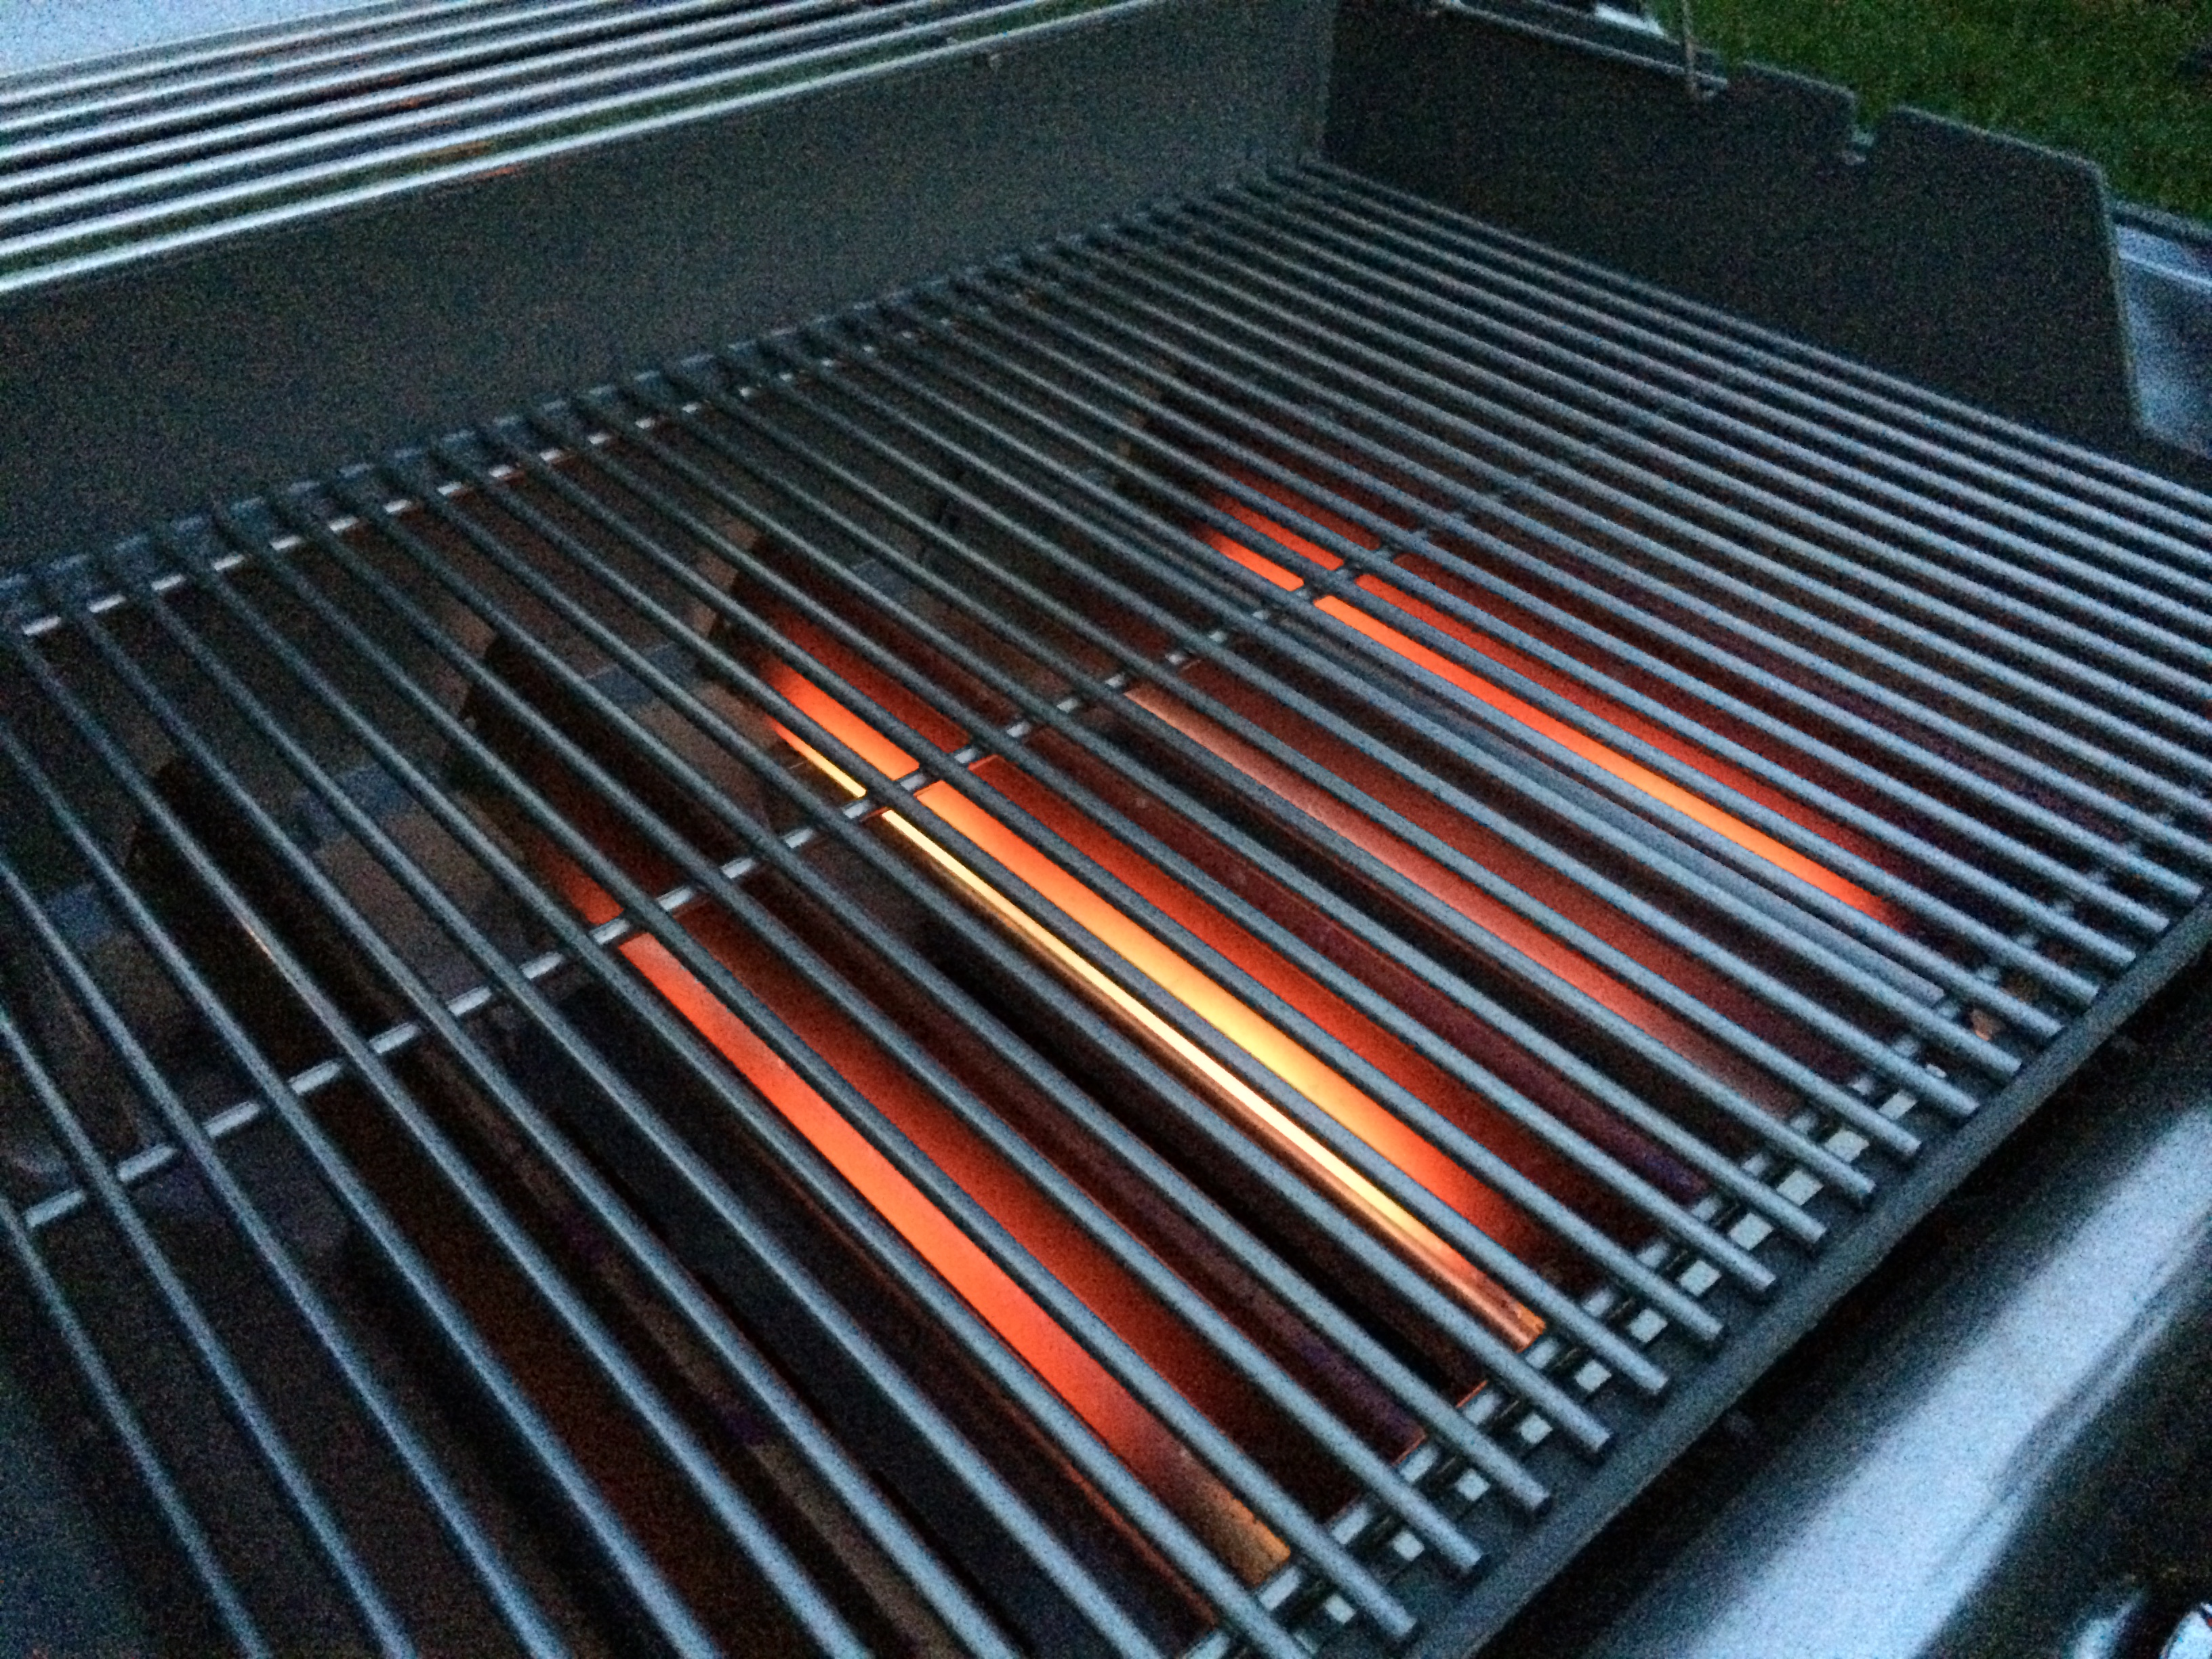 2014 Holiday Gift Guide for Foo s and Grilling Enthusiasts